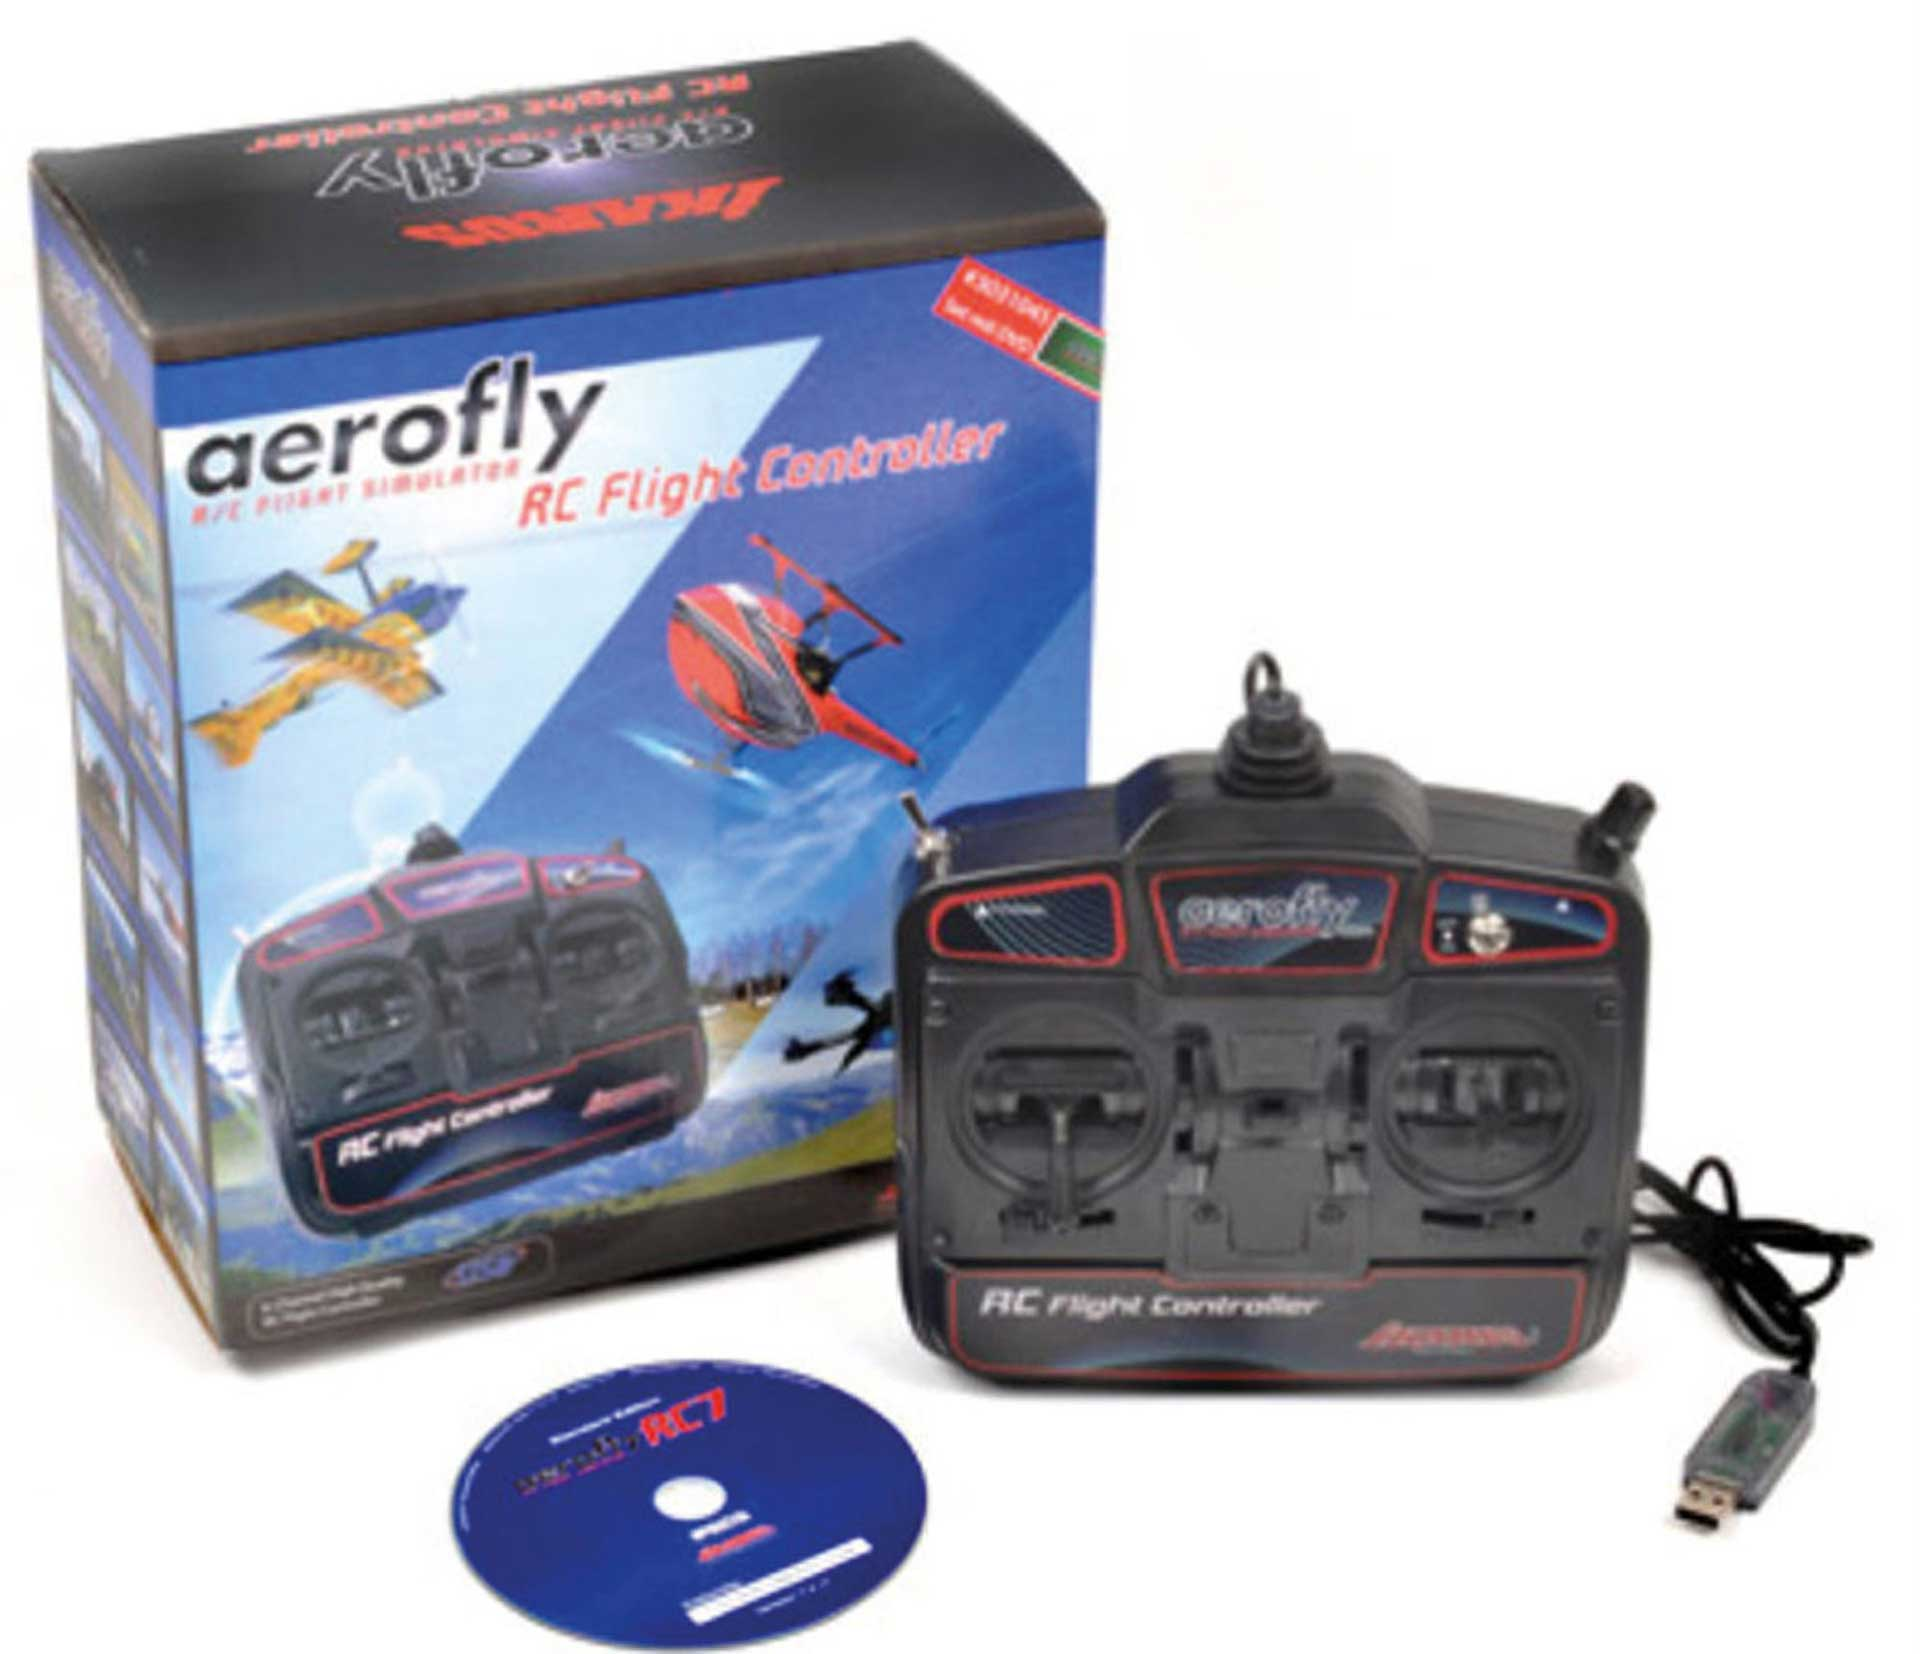 IKARUS AEROFLY RC7 STANDARD WITH USB CONTROLLER